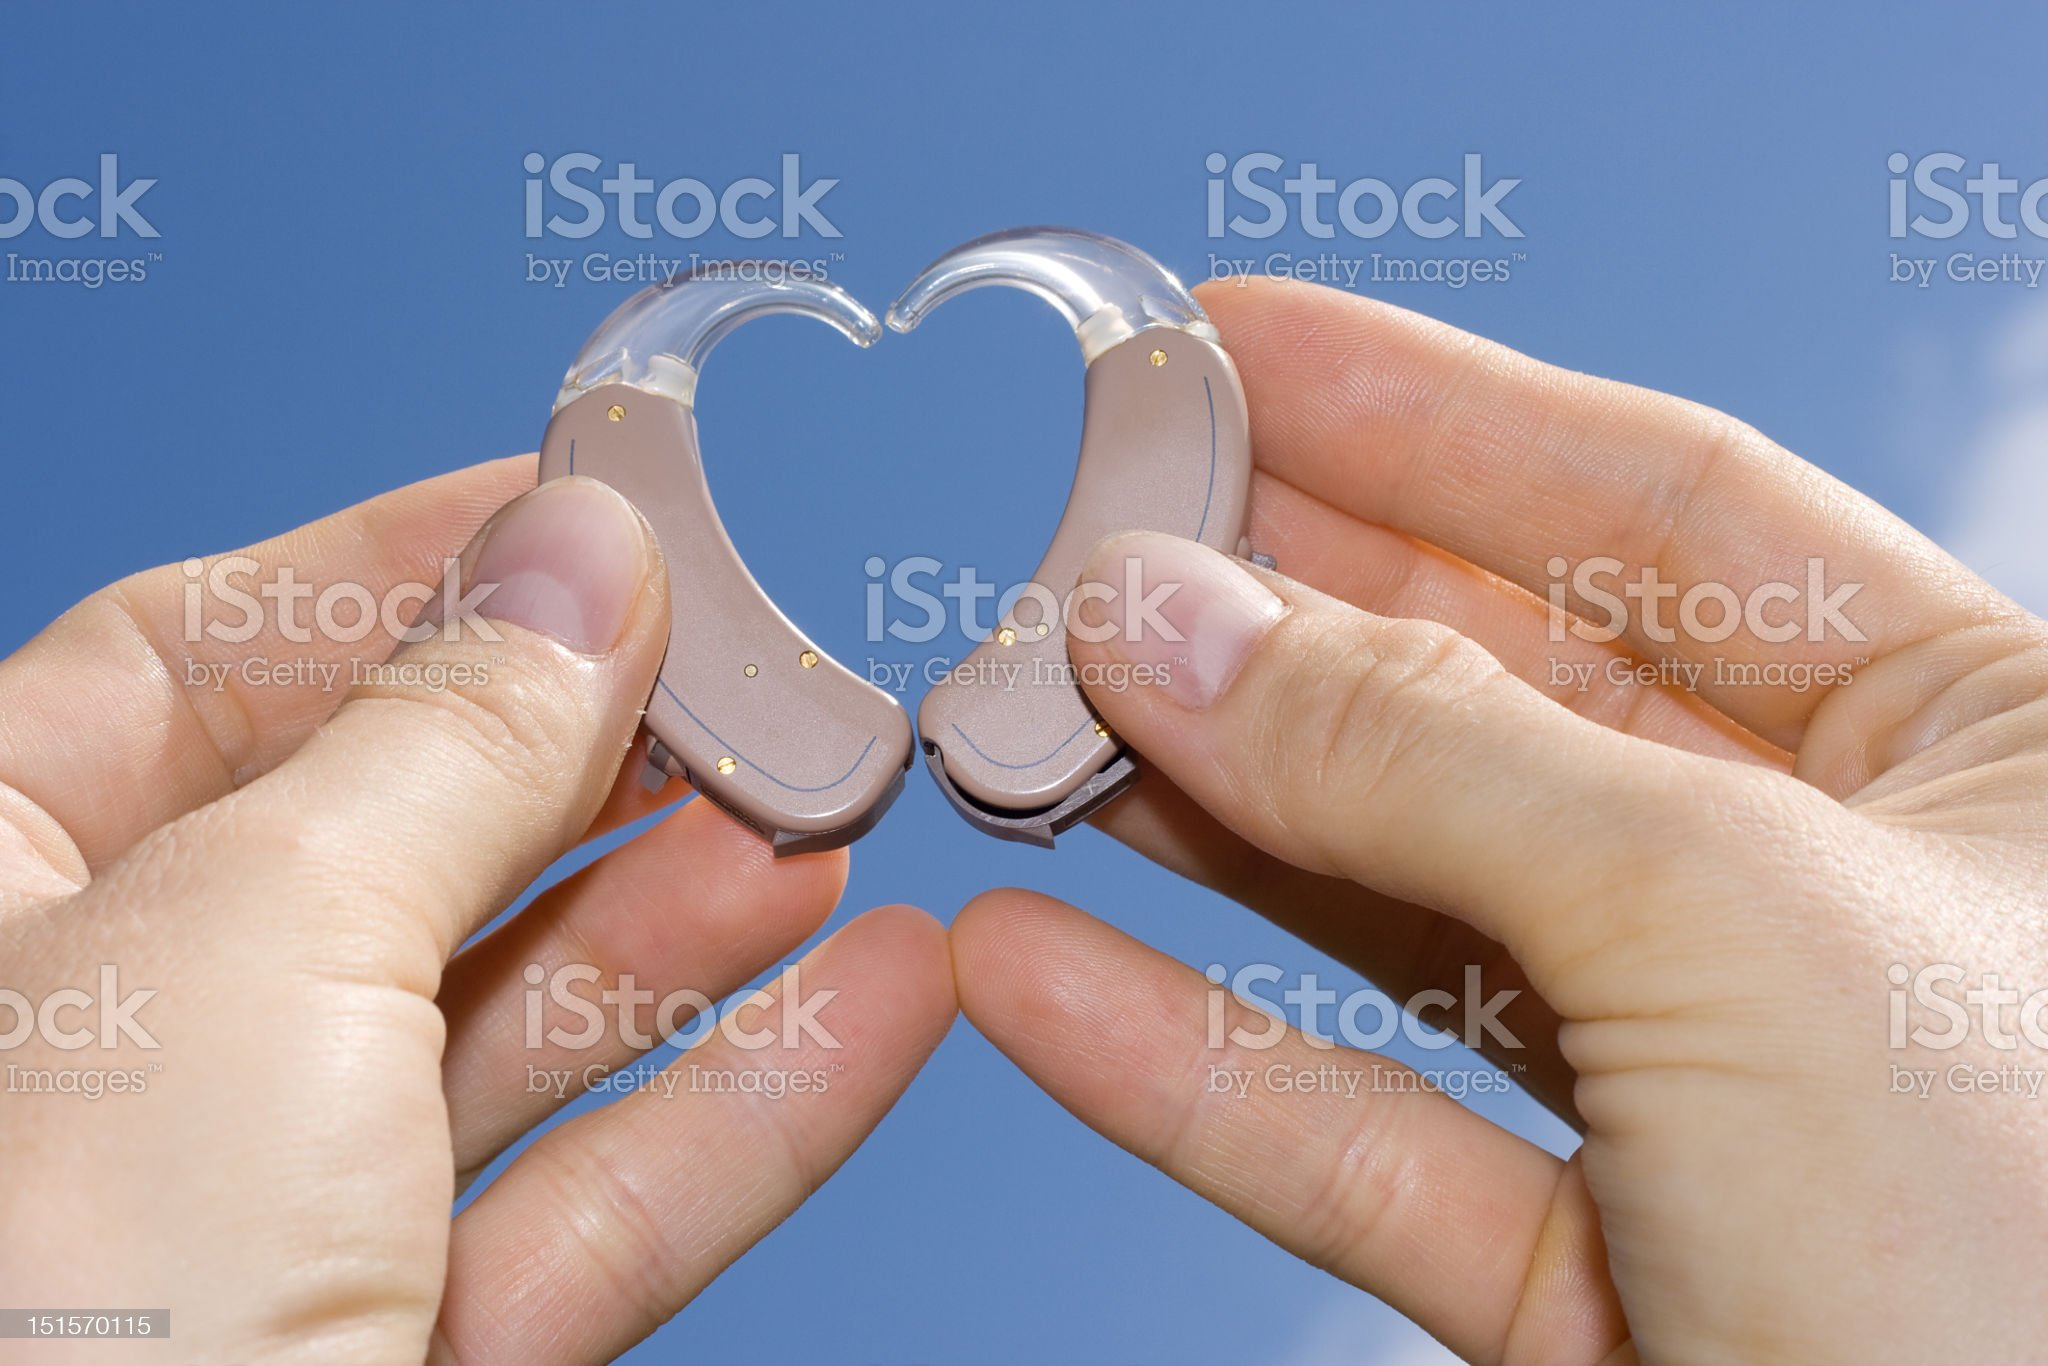 Hands making a heart shape out of hearing aids royalty-free stock photo